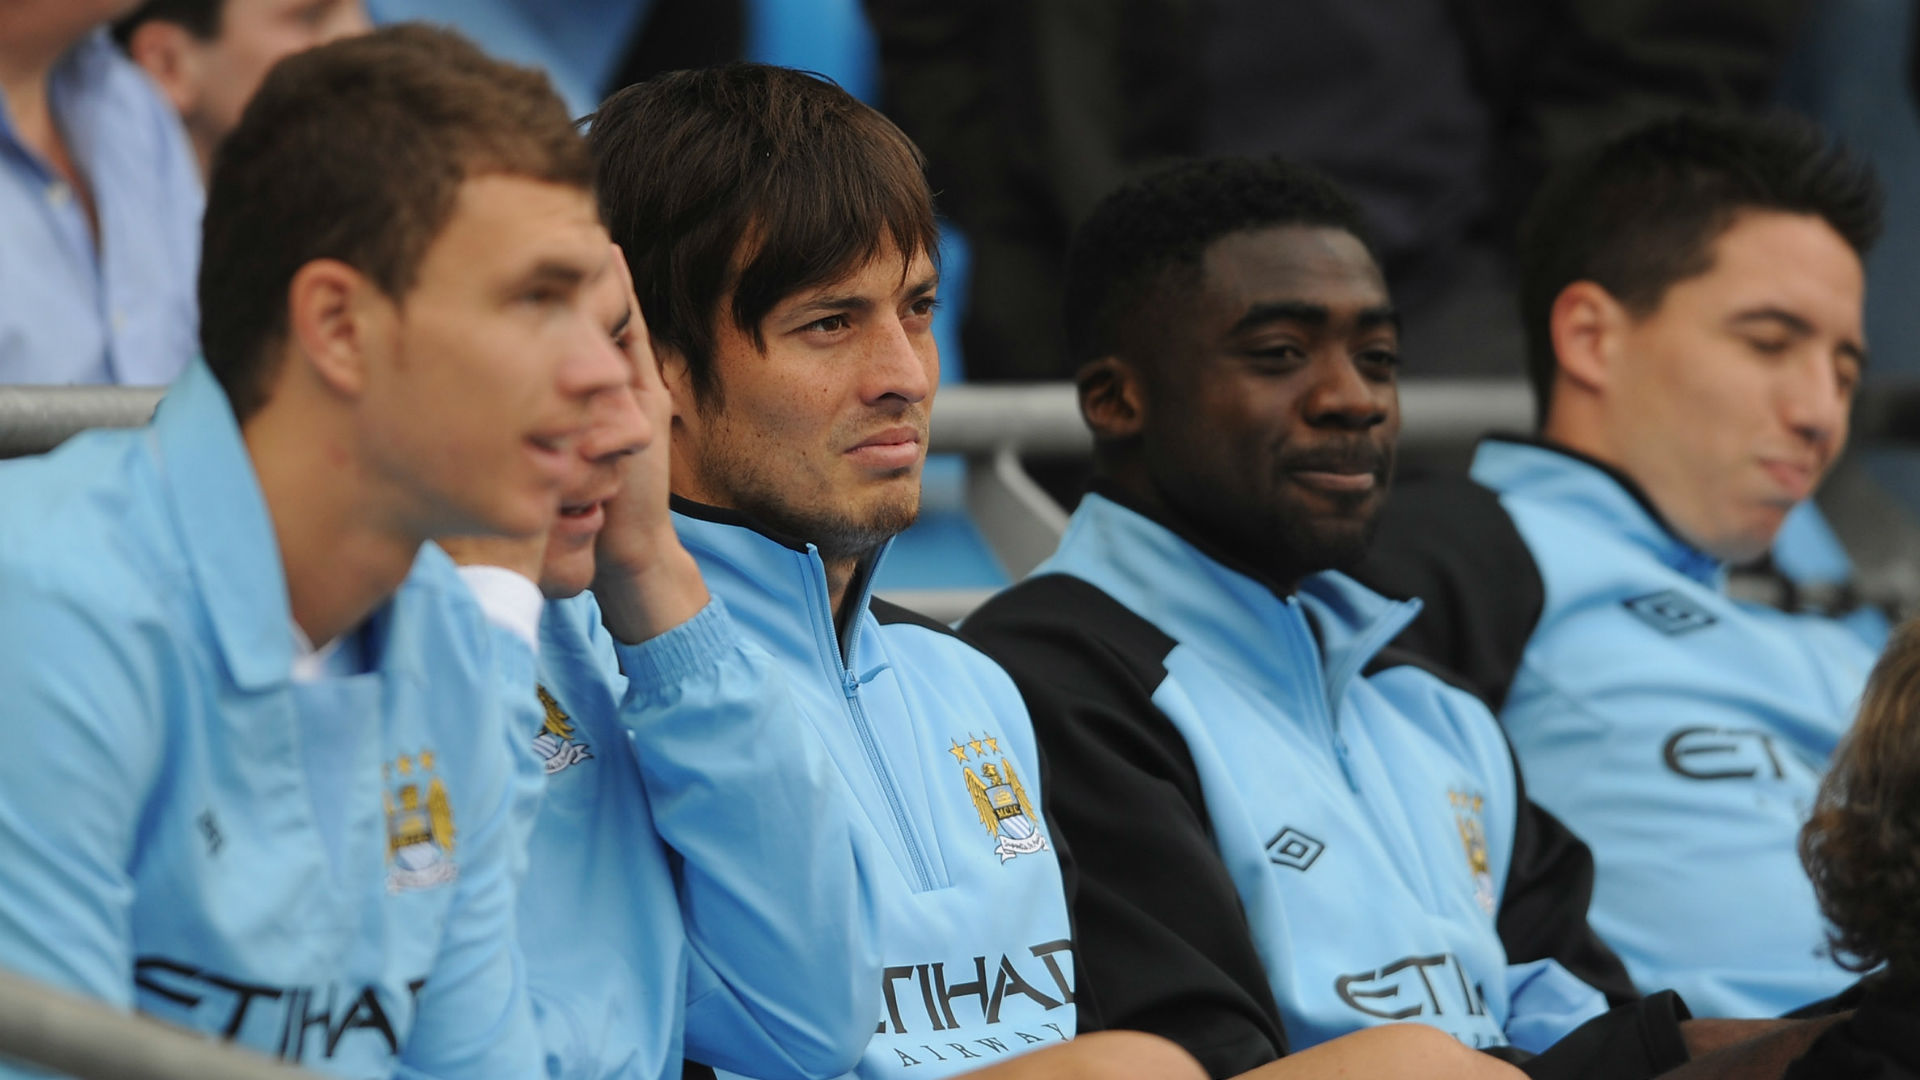 It was an honour to play with David Silva - Kolo Toure hails departing Man City great